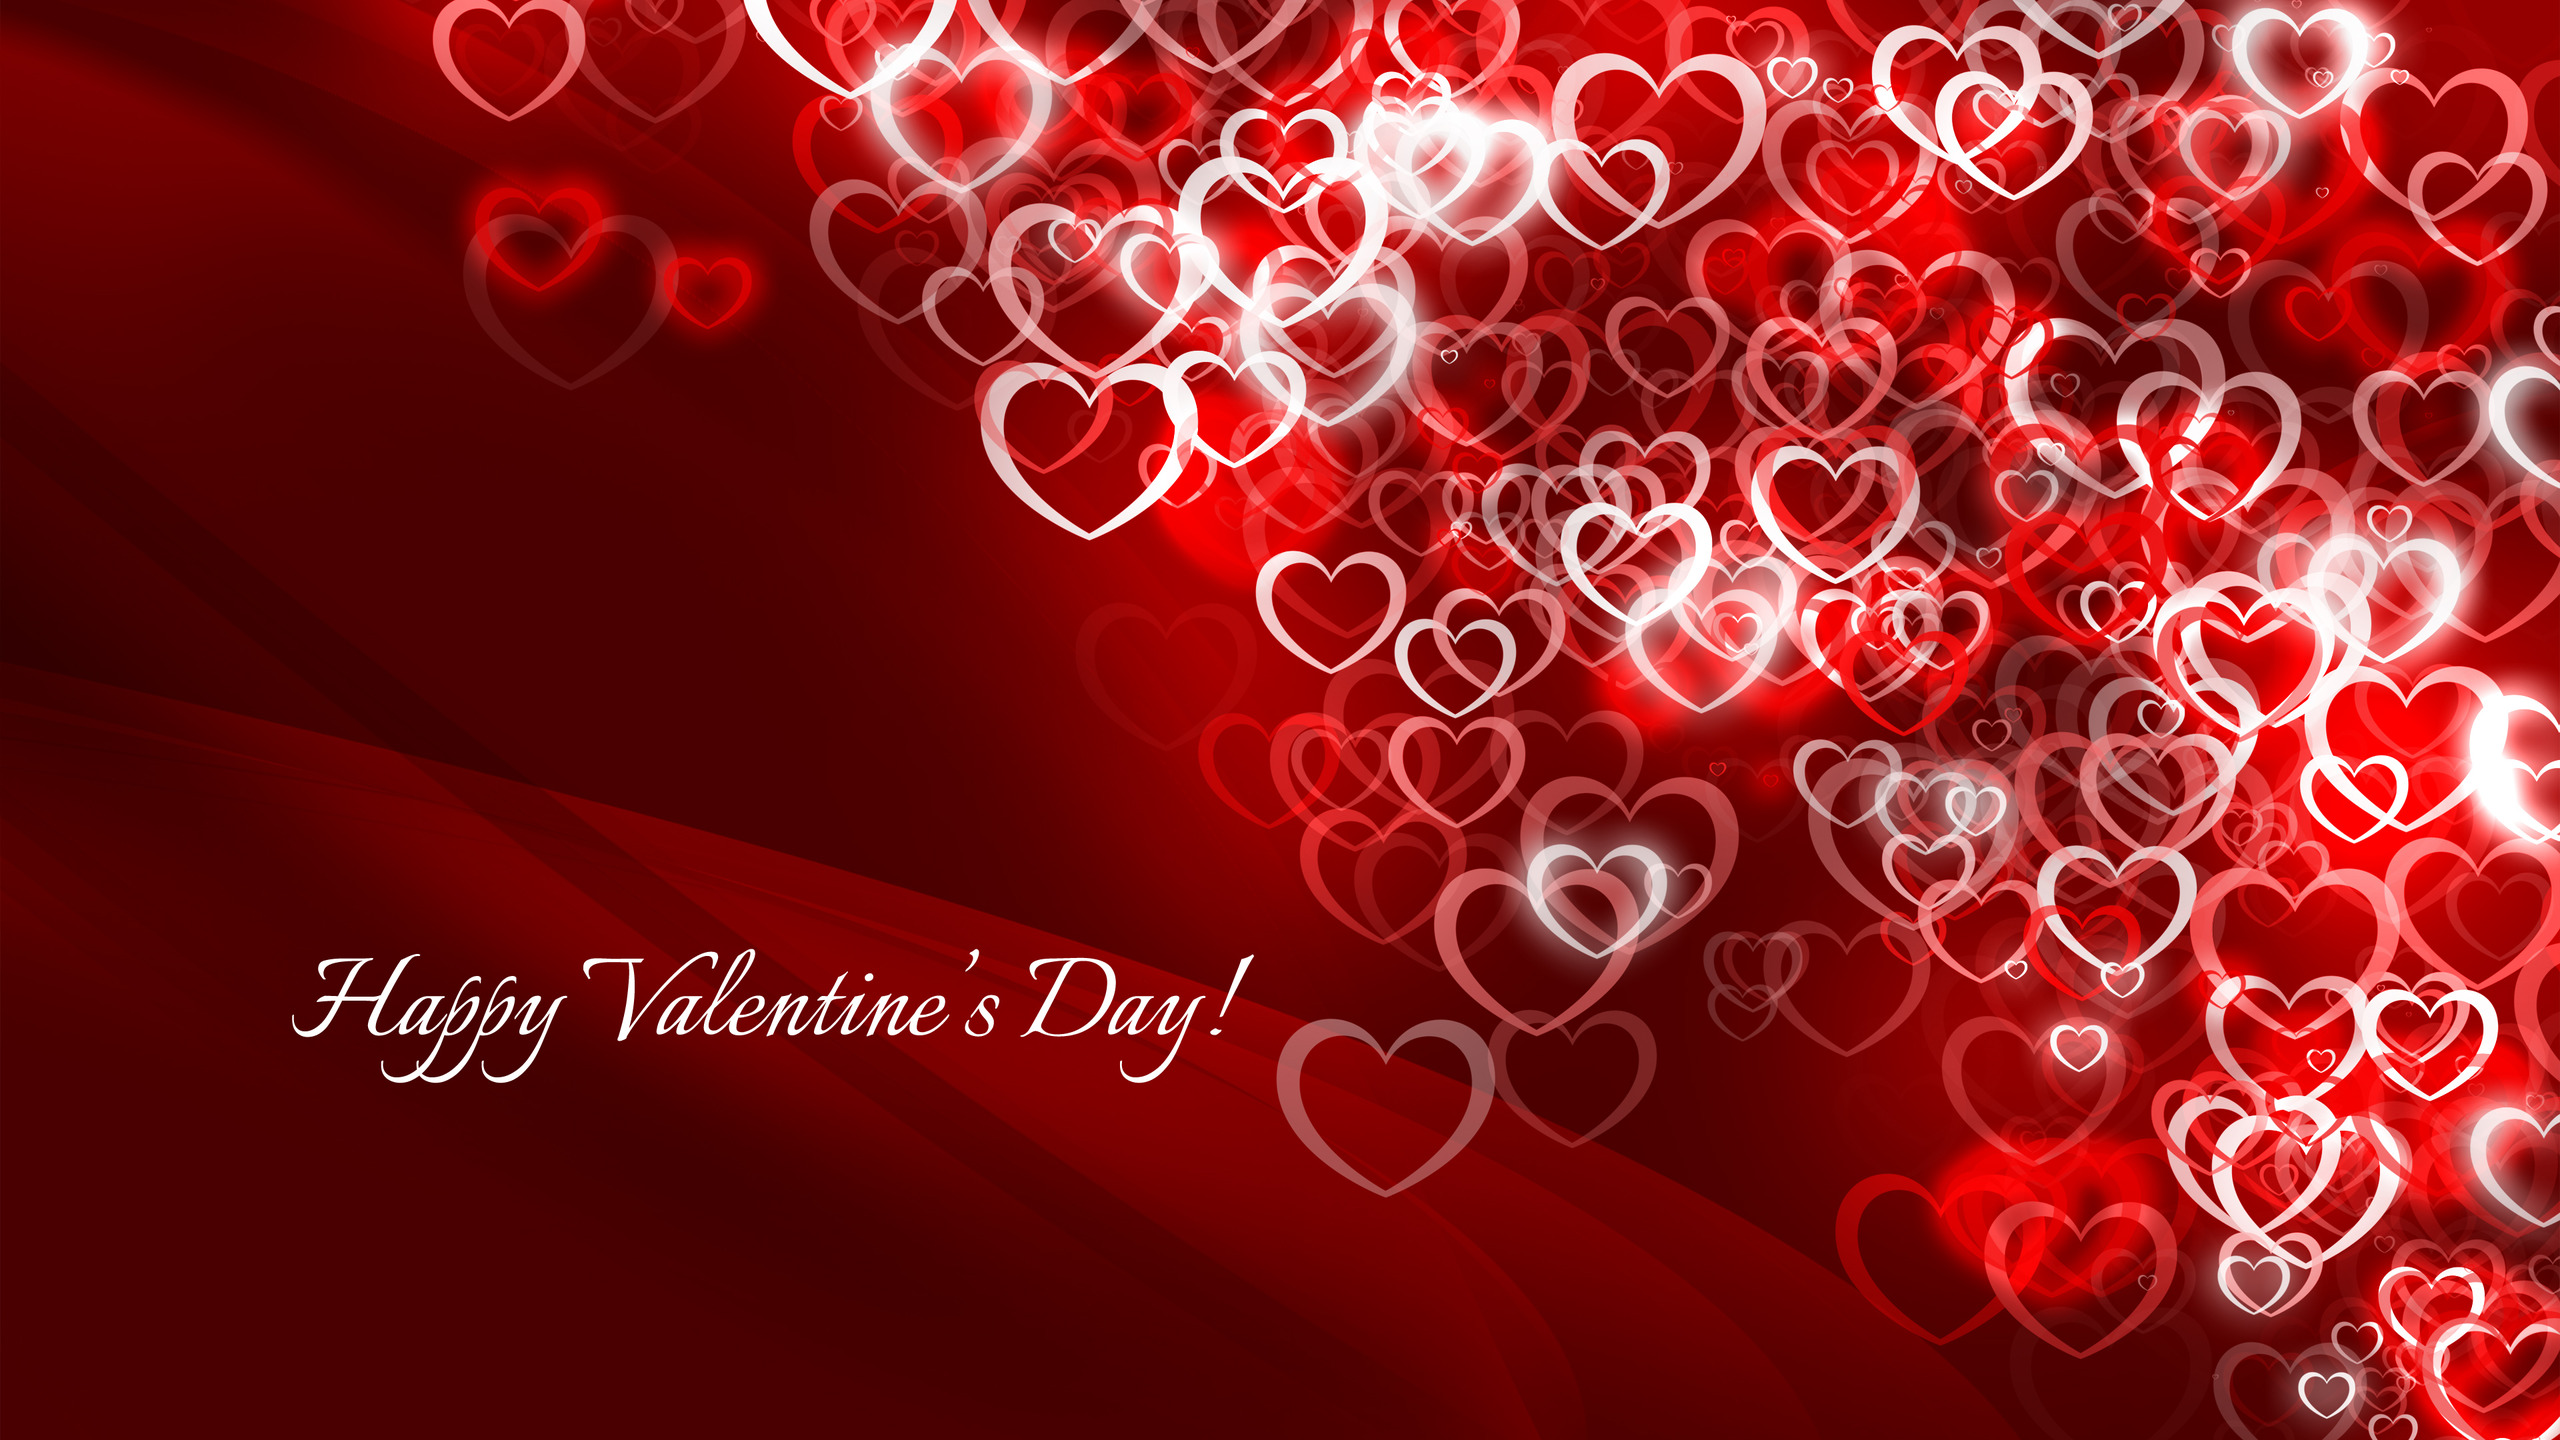 HD Wallpapers Valentines Download 2560x1440